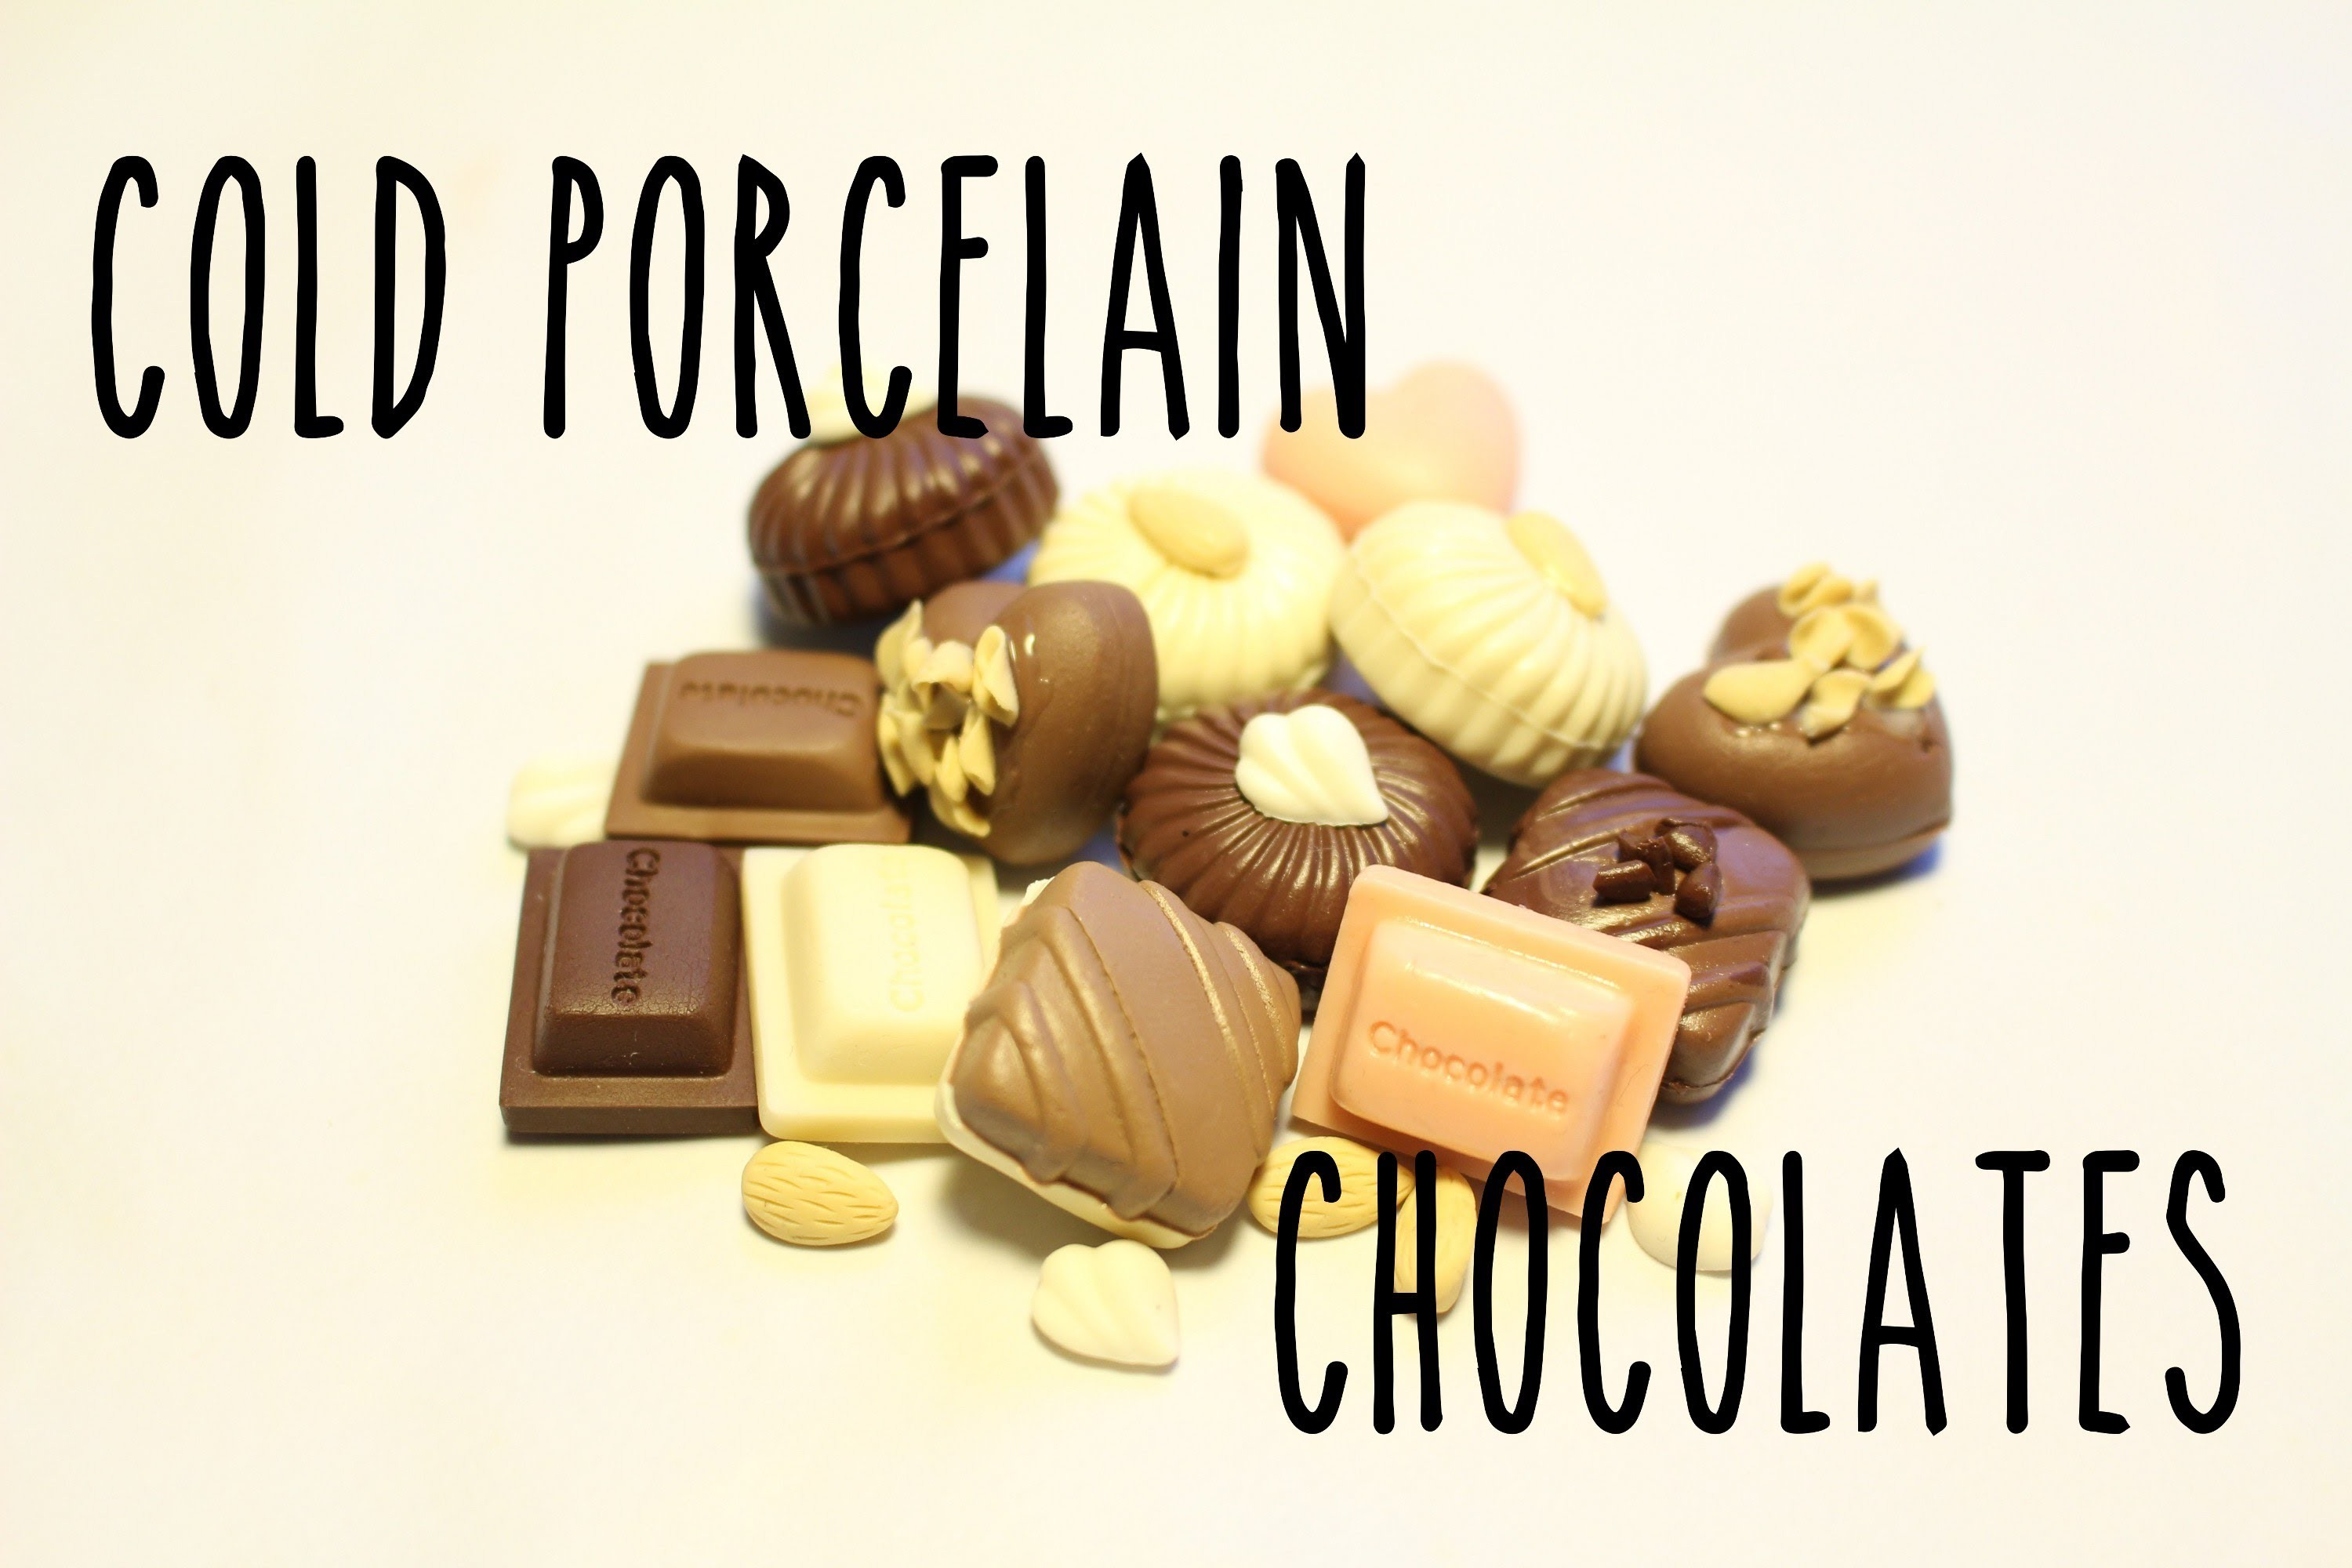 Cold porcelain tutorial: Chocolate truffles